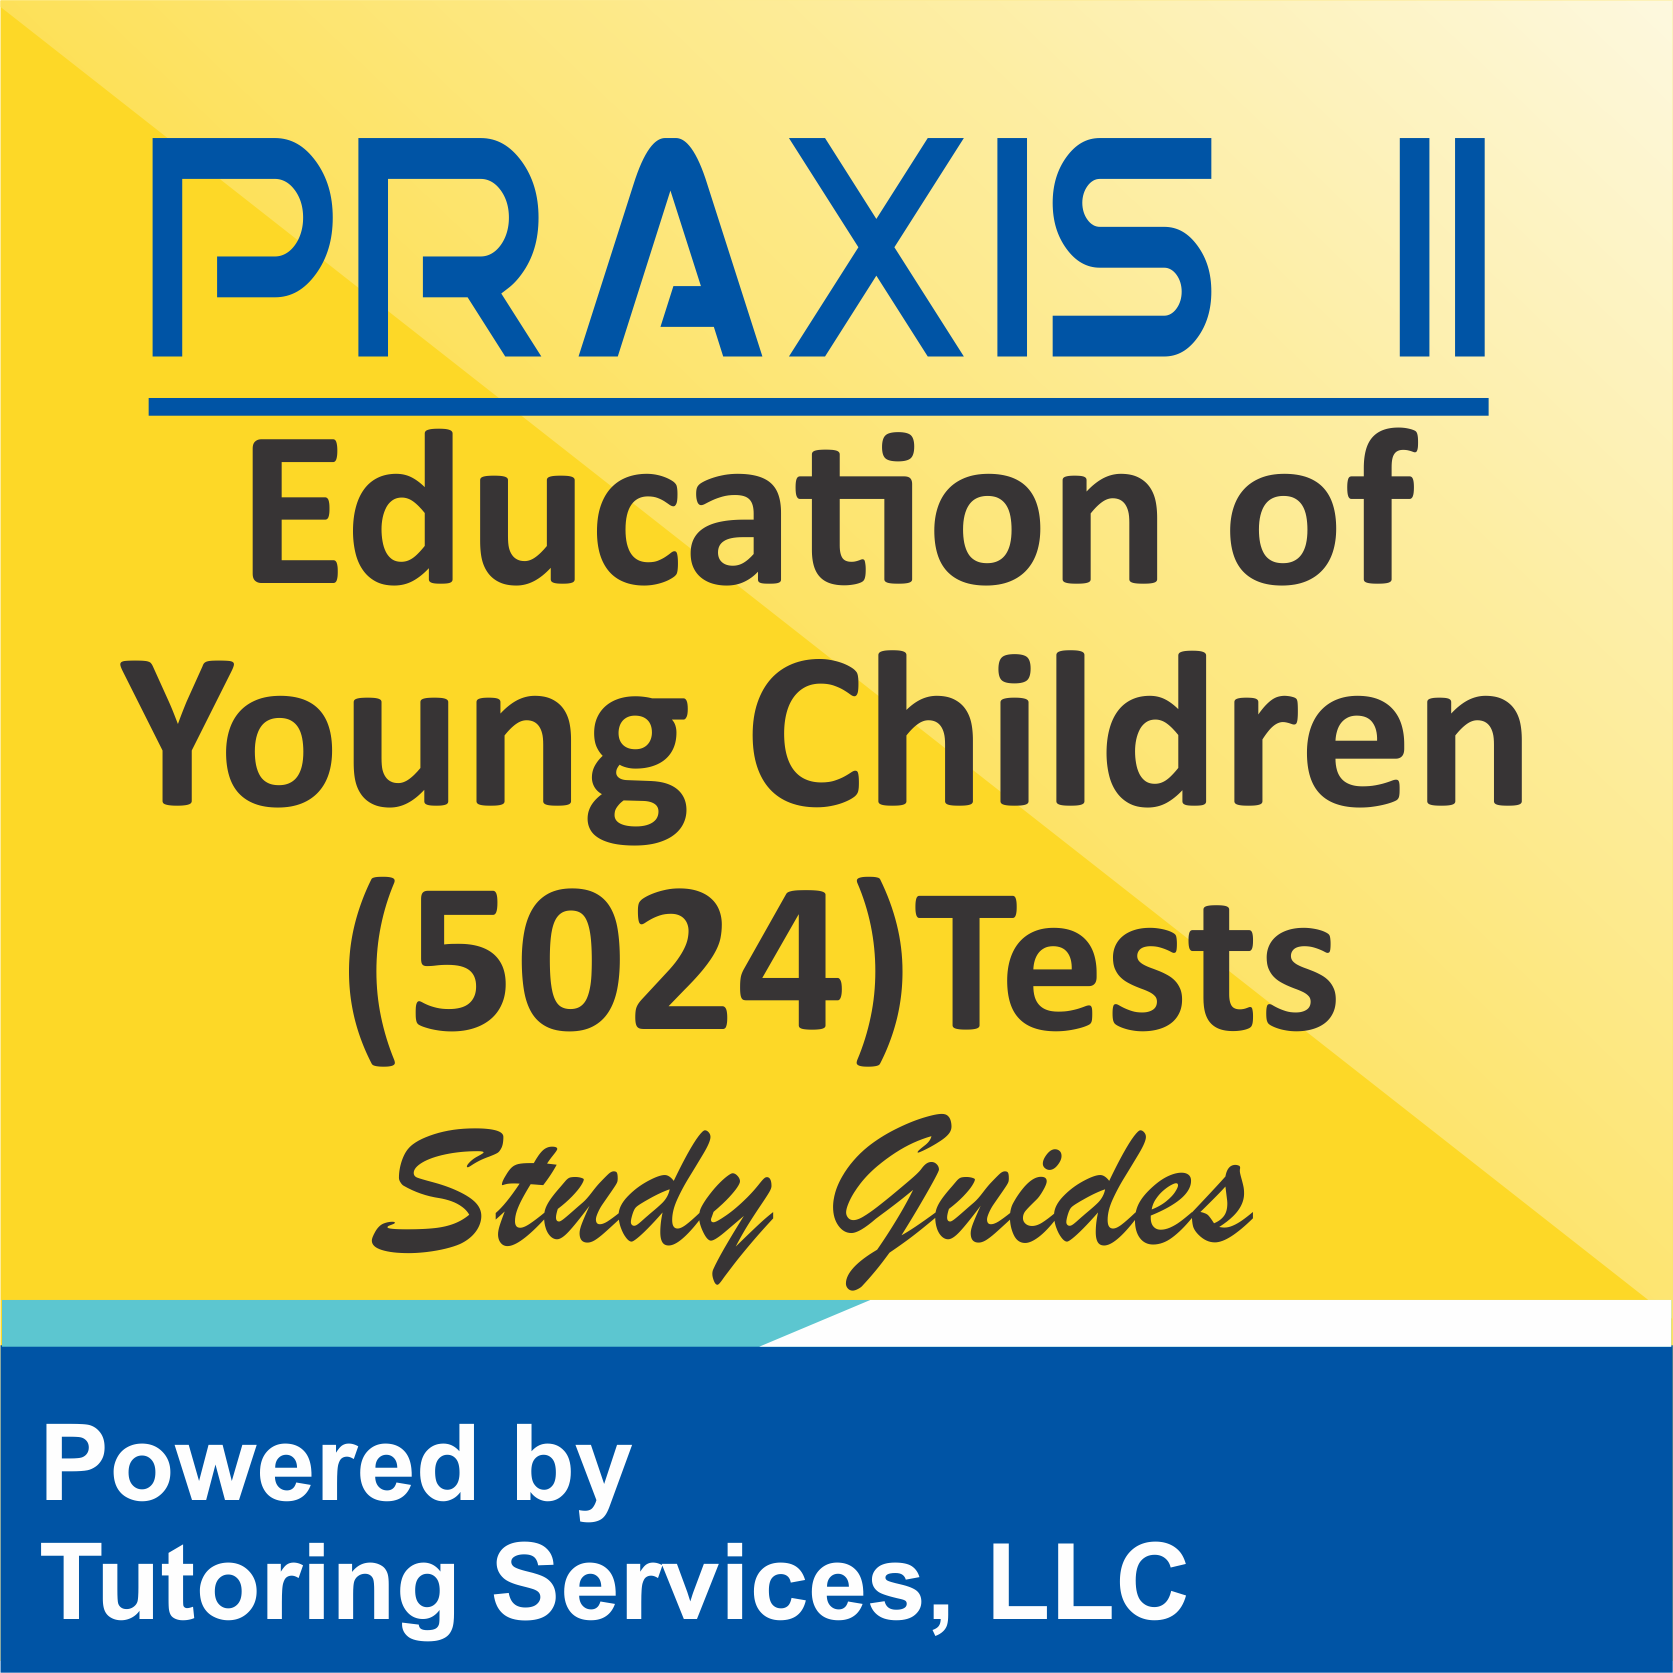 Praxis II Education of Young Children (5024) Examination Information